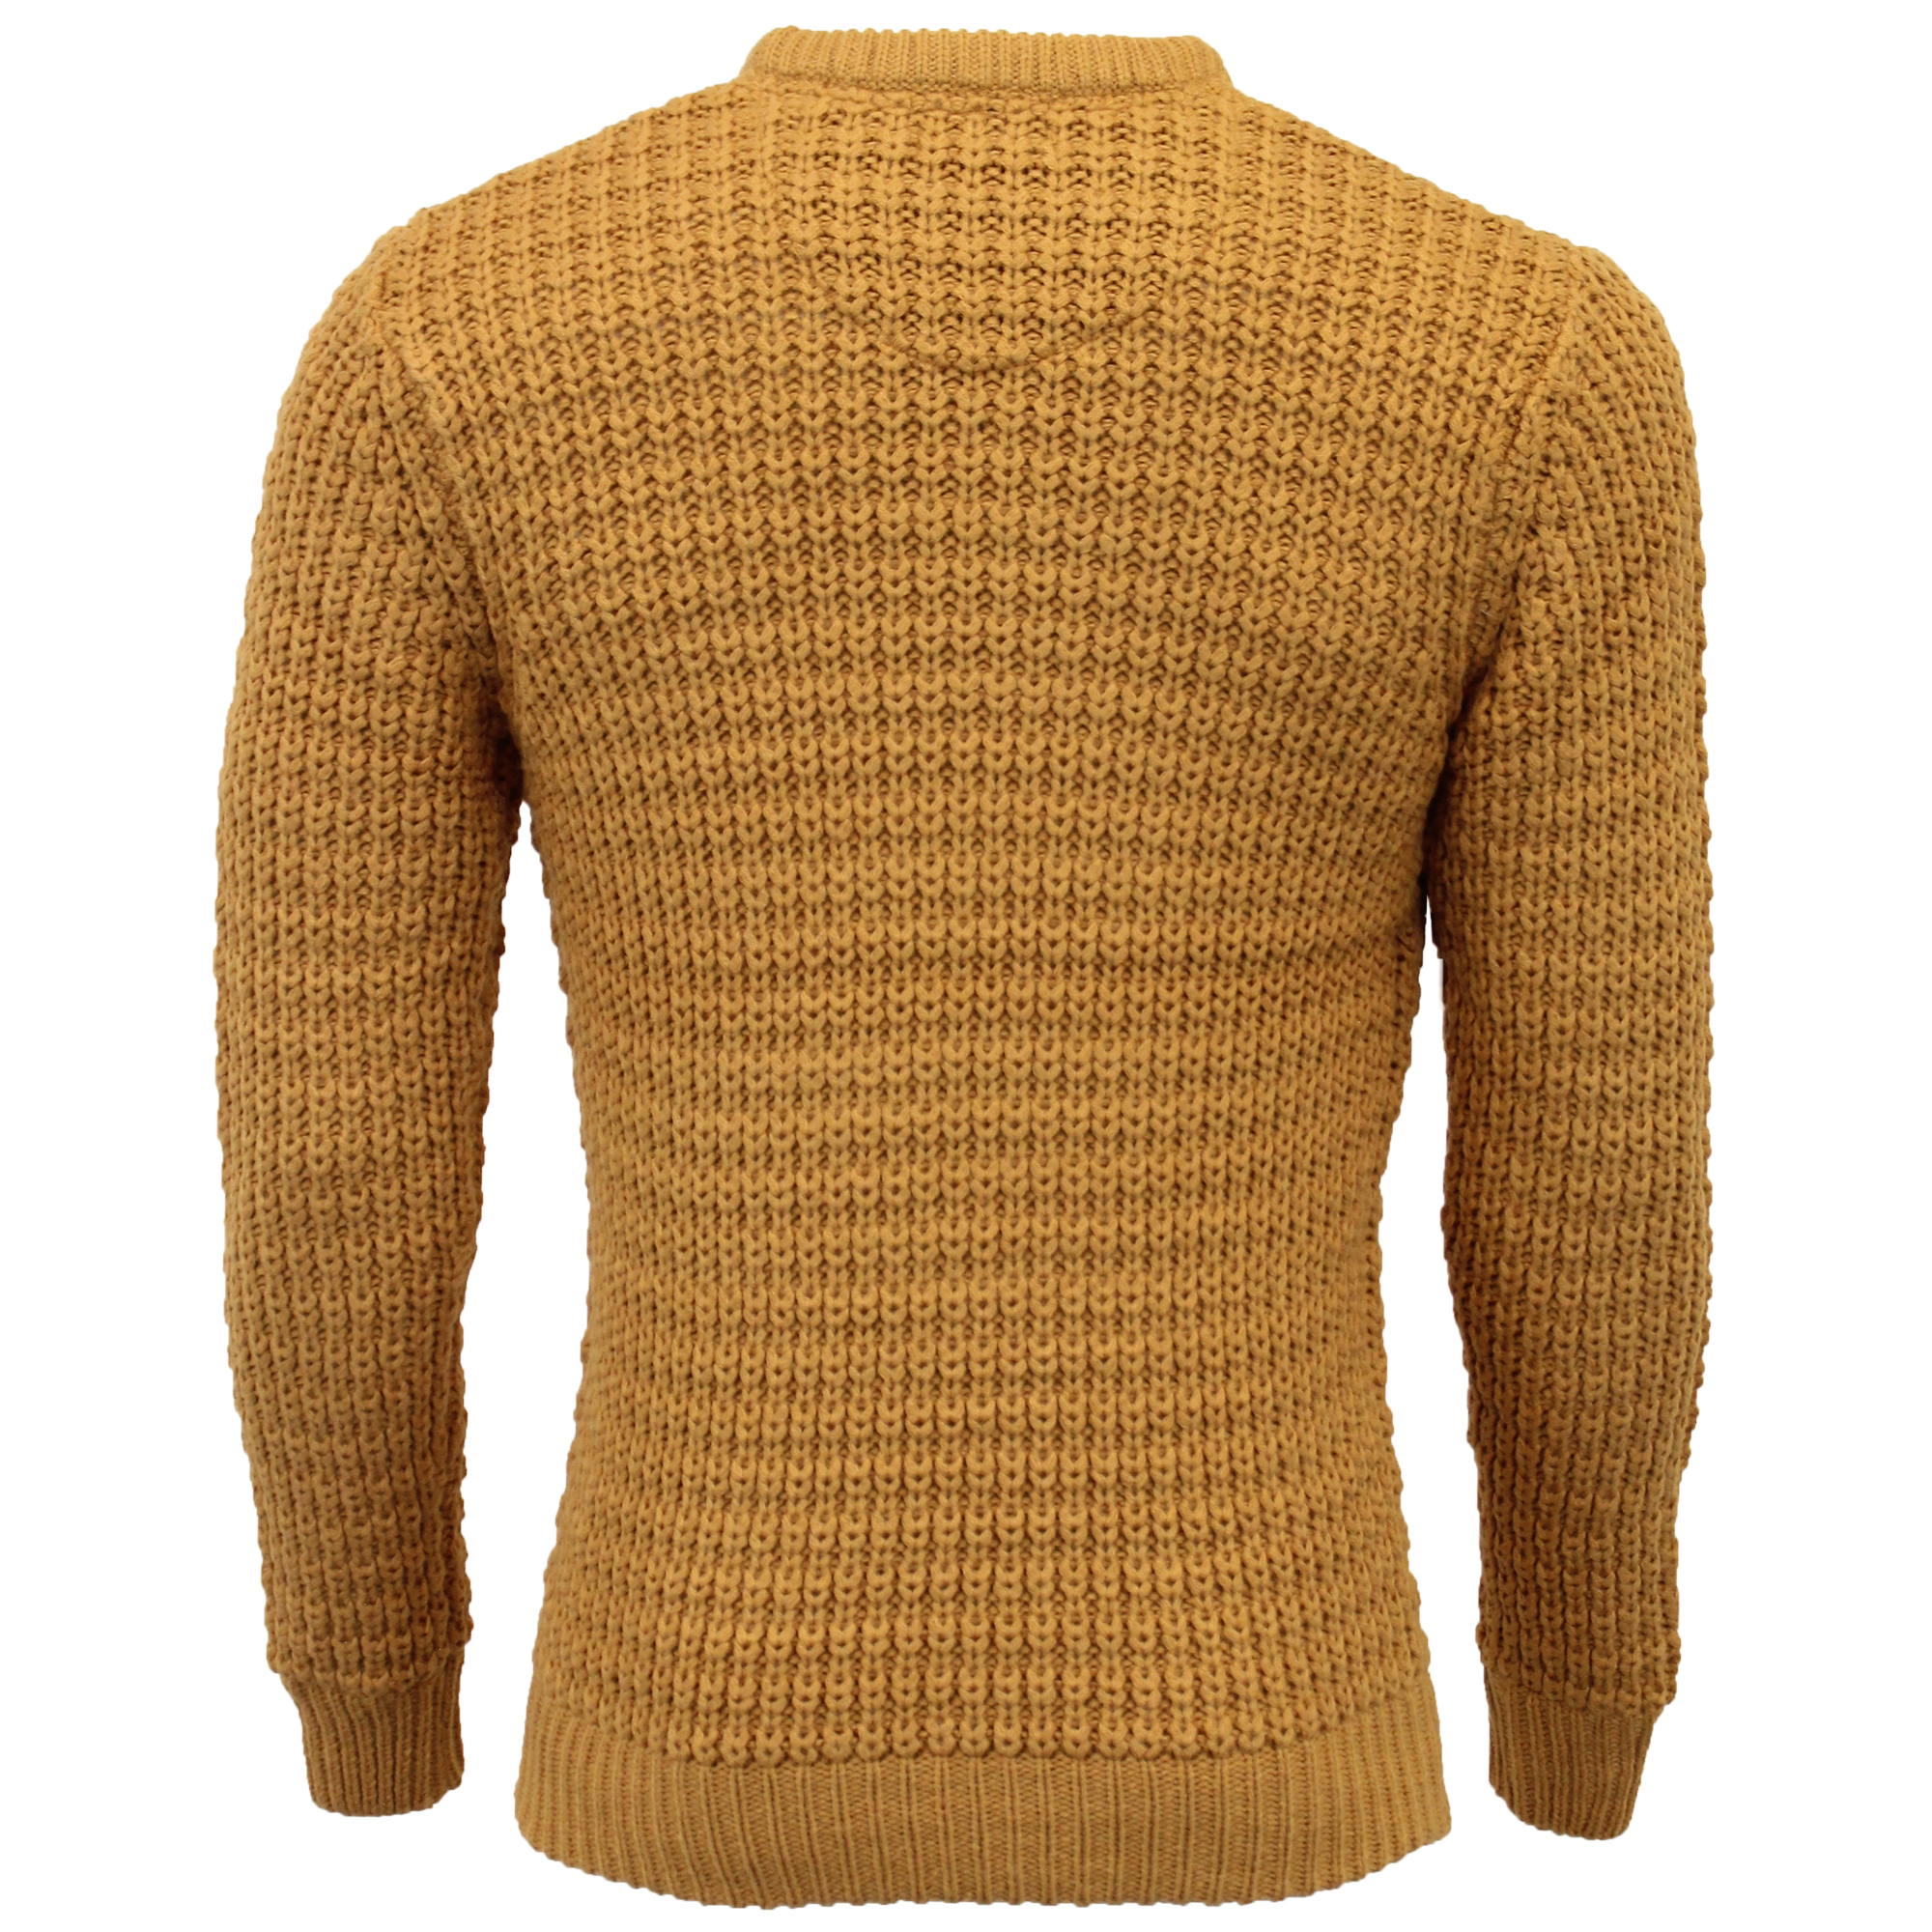 Mens-Cable-Knitted-Jumper-Brave-Soul-DIRAC-Crew-Neck-Pullover-Top-Winter-Fashion thumbnail 15